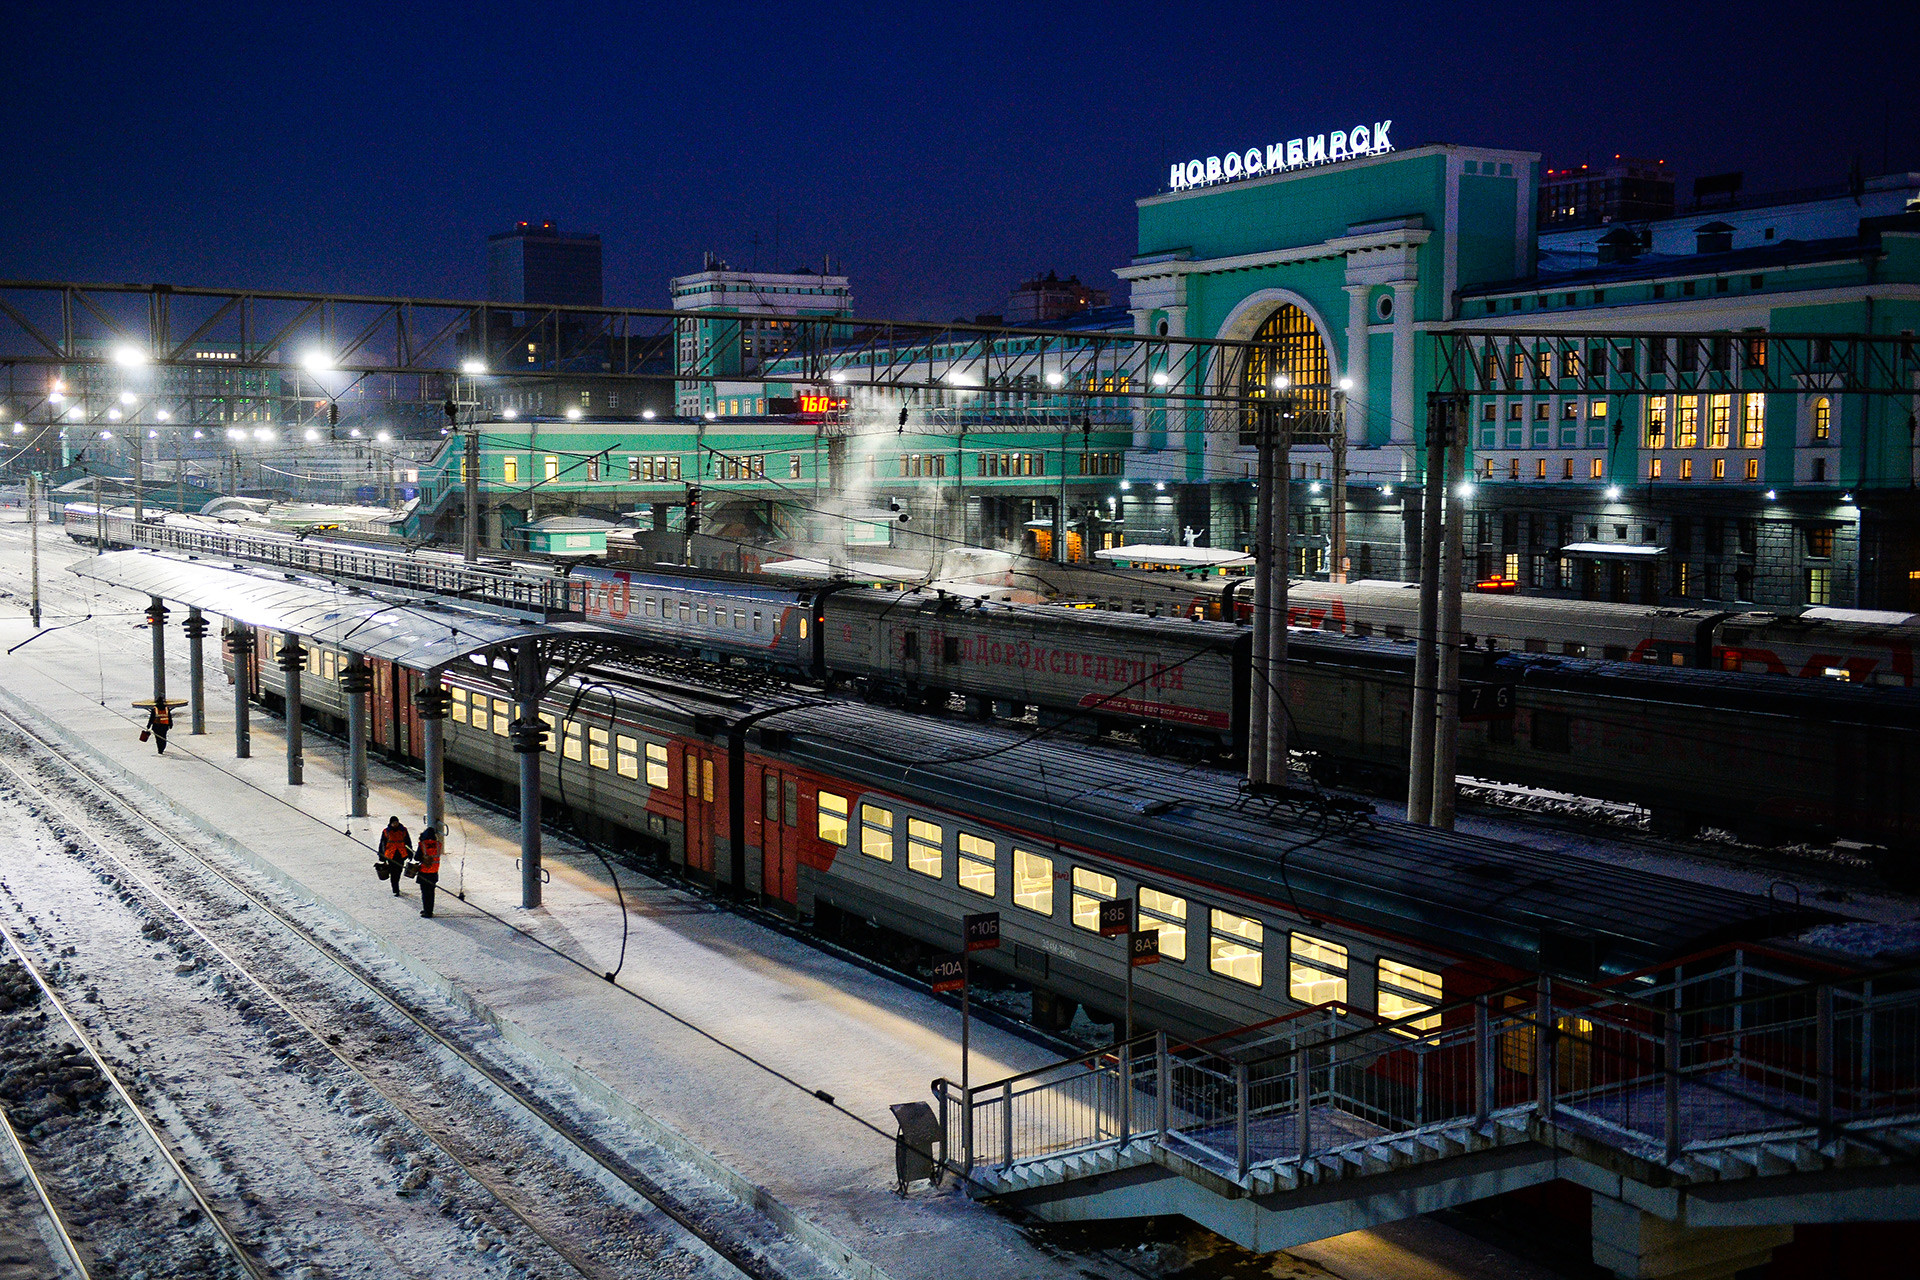 Most Siberians believe that the capital of Russia should be moved to Siberia.